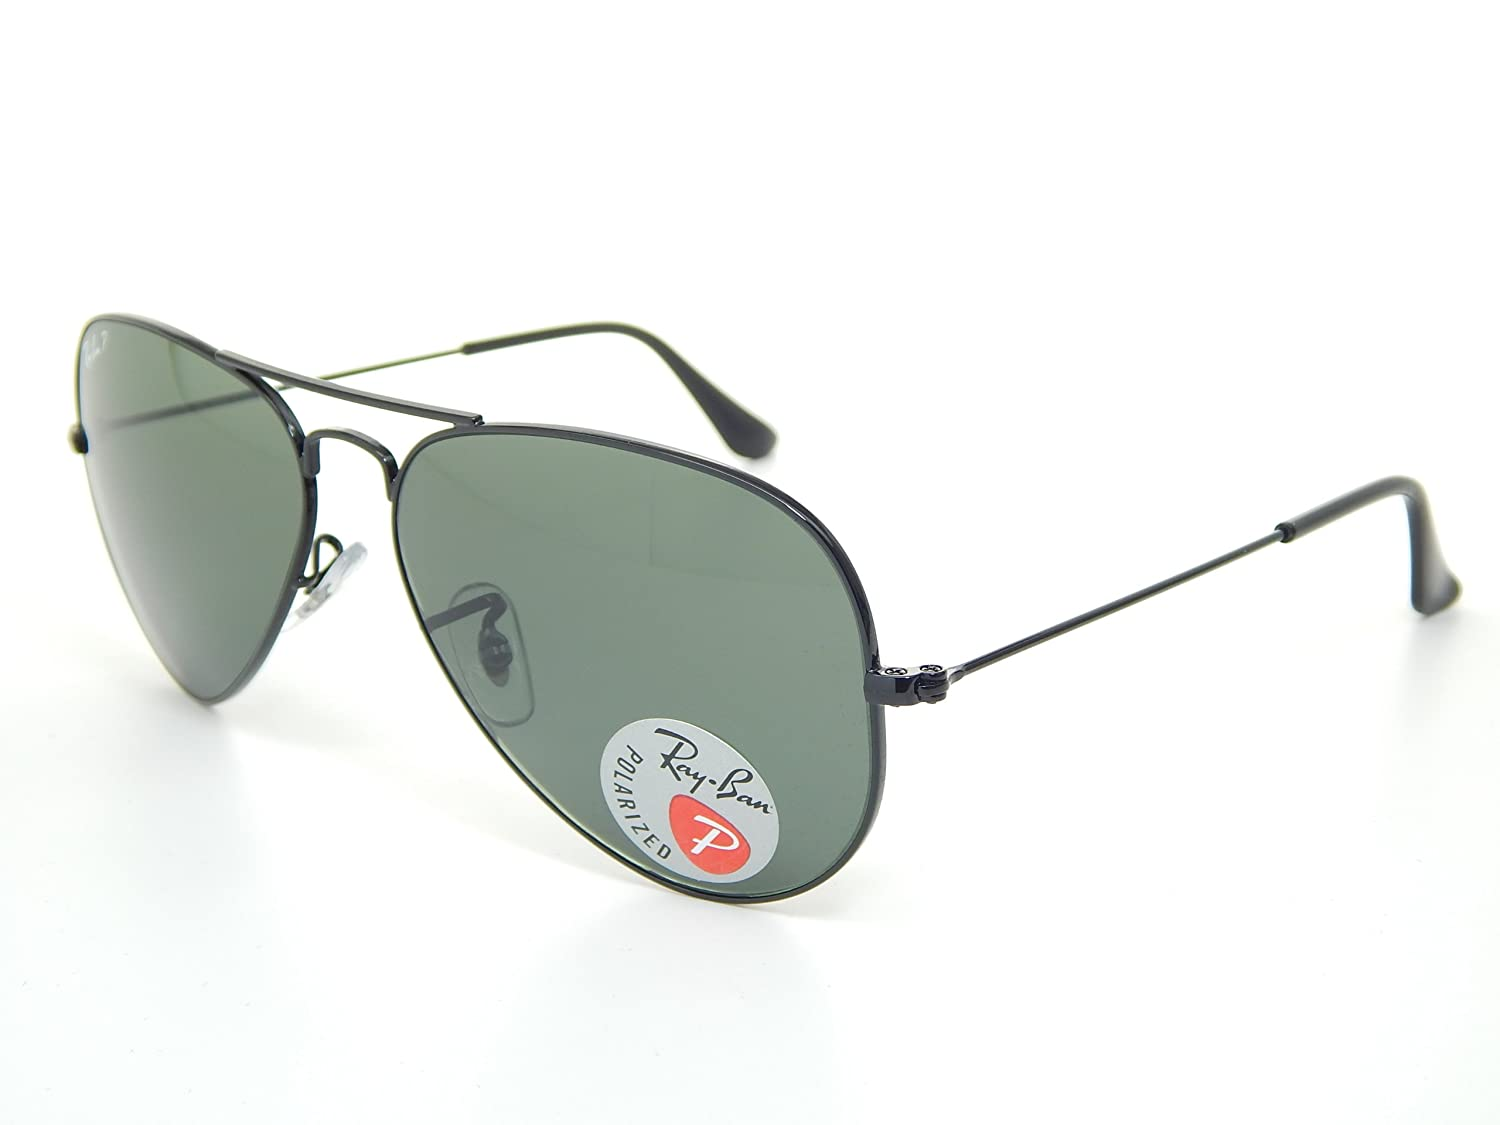 bde5675a2e Amazon.com  Ray-Ban Aviator Polarized Black Frame w  Natural Green RB 3025  002 58 55mm Small  Shoes